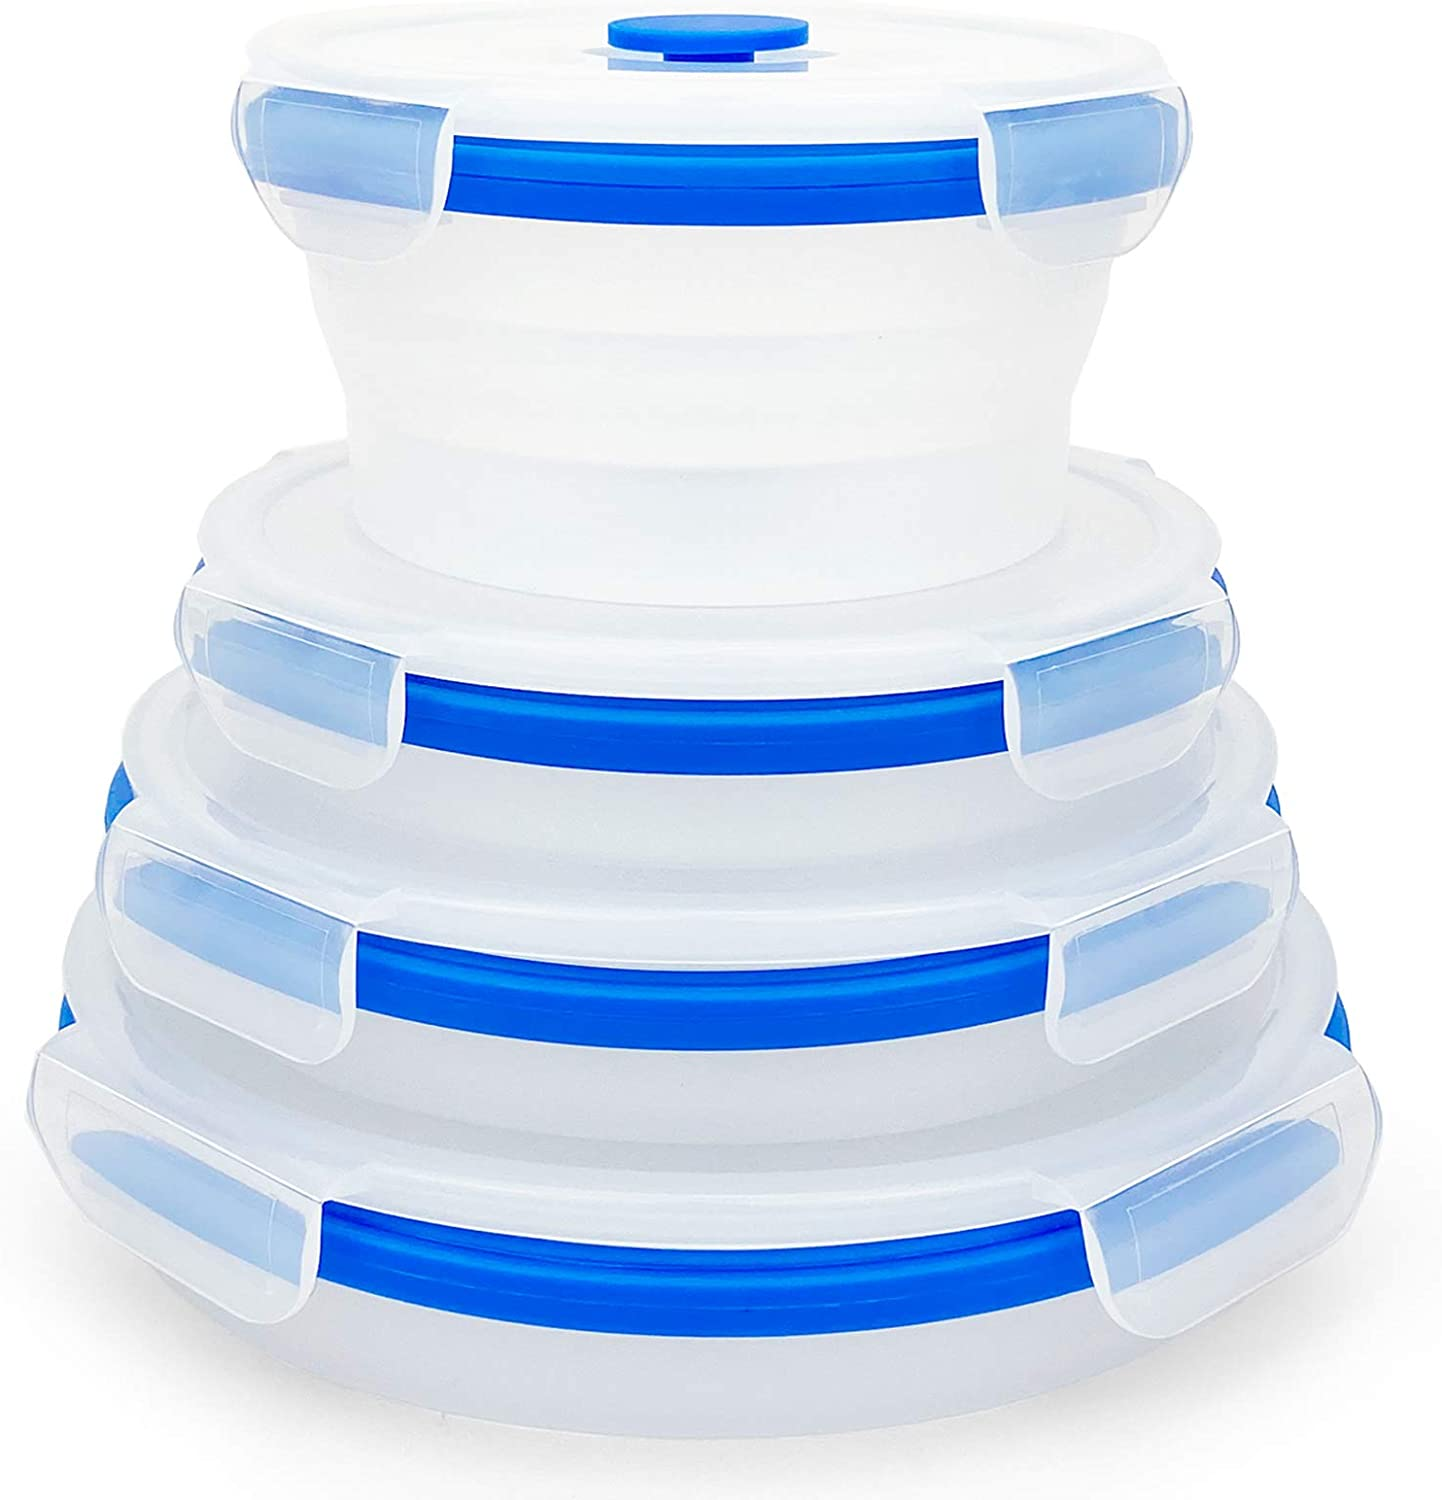 CCyanzi Silicone Containers For Food Storage, Collapsible Bowl with lids | Space Saving | Leakproof | Microwave Freezer Safe | Silicone Lunch Conatiners for Sandwich, Snacks